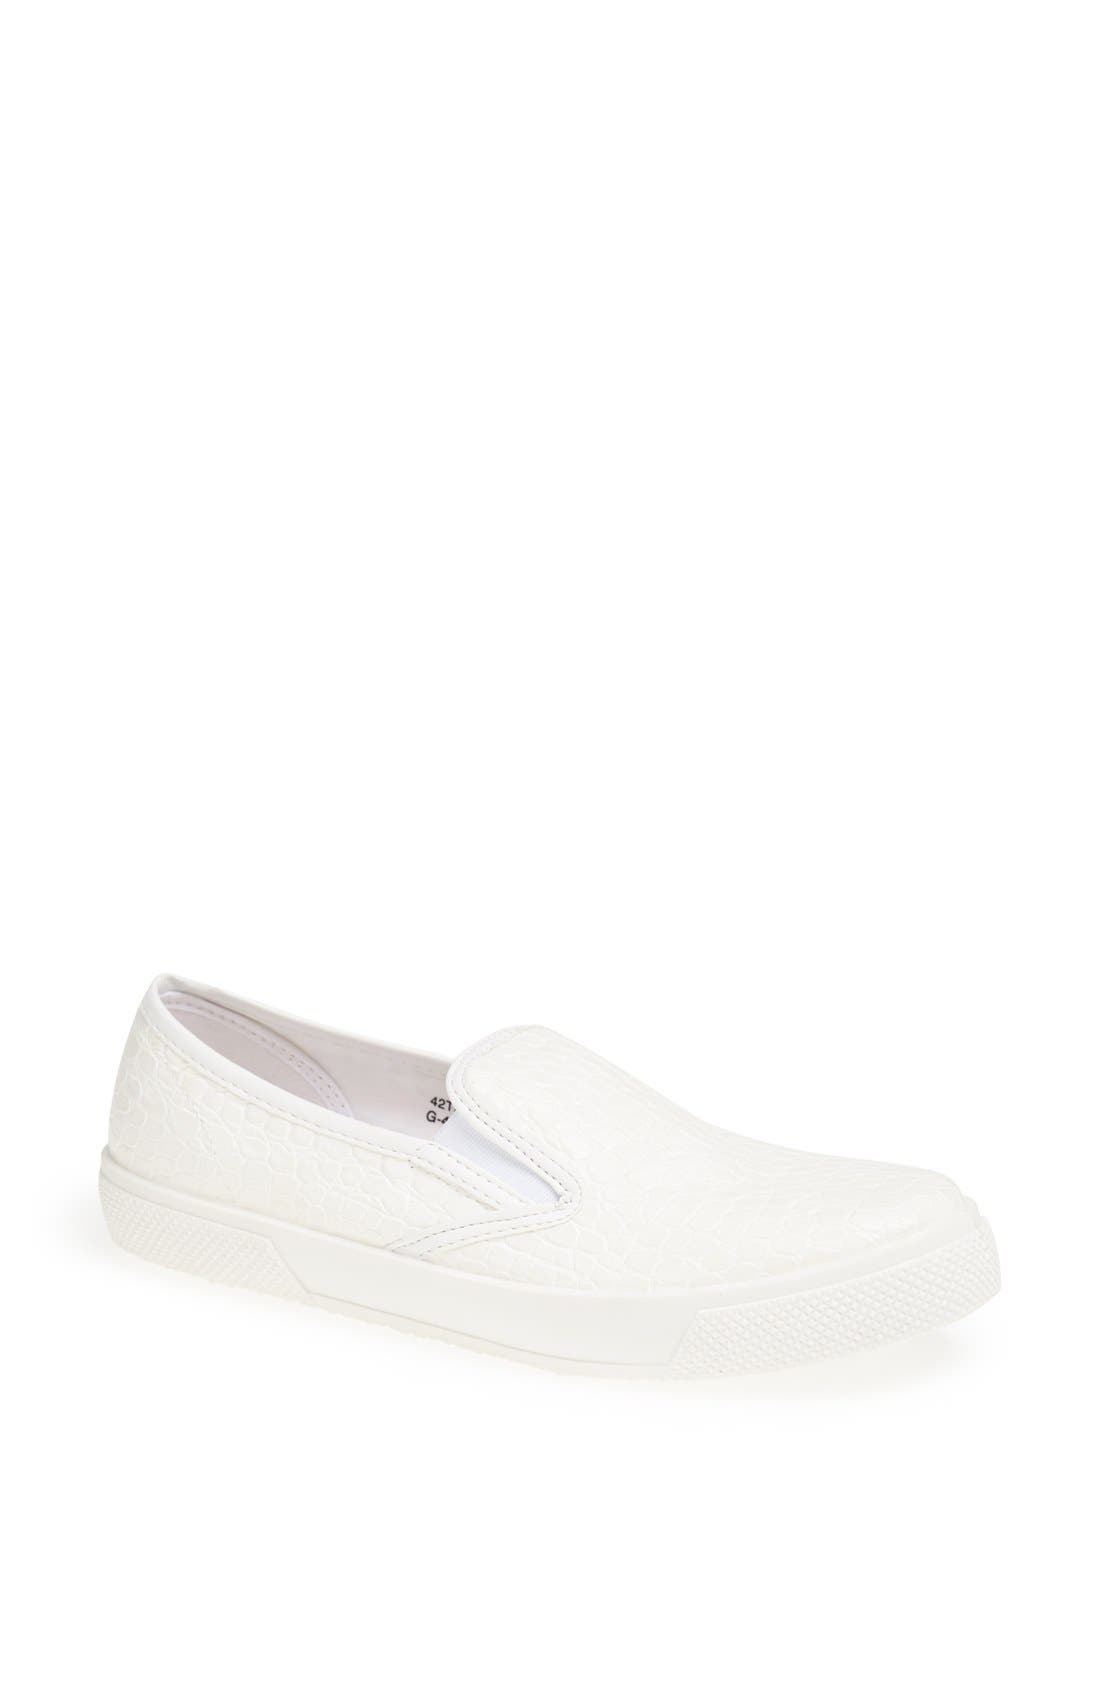 Alternate Image 1 Selected - Topshop 'Tika' Slip-On